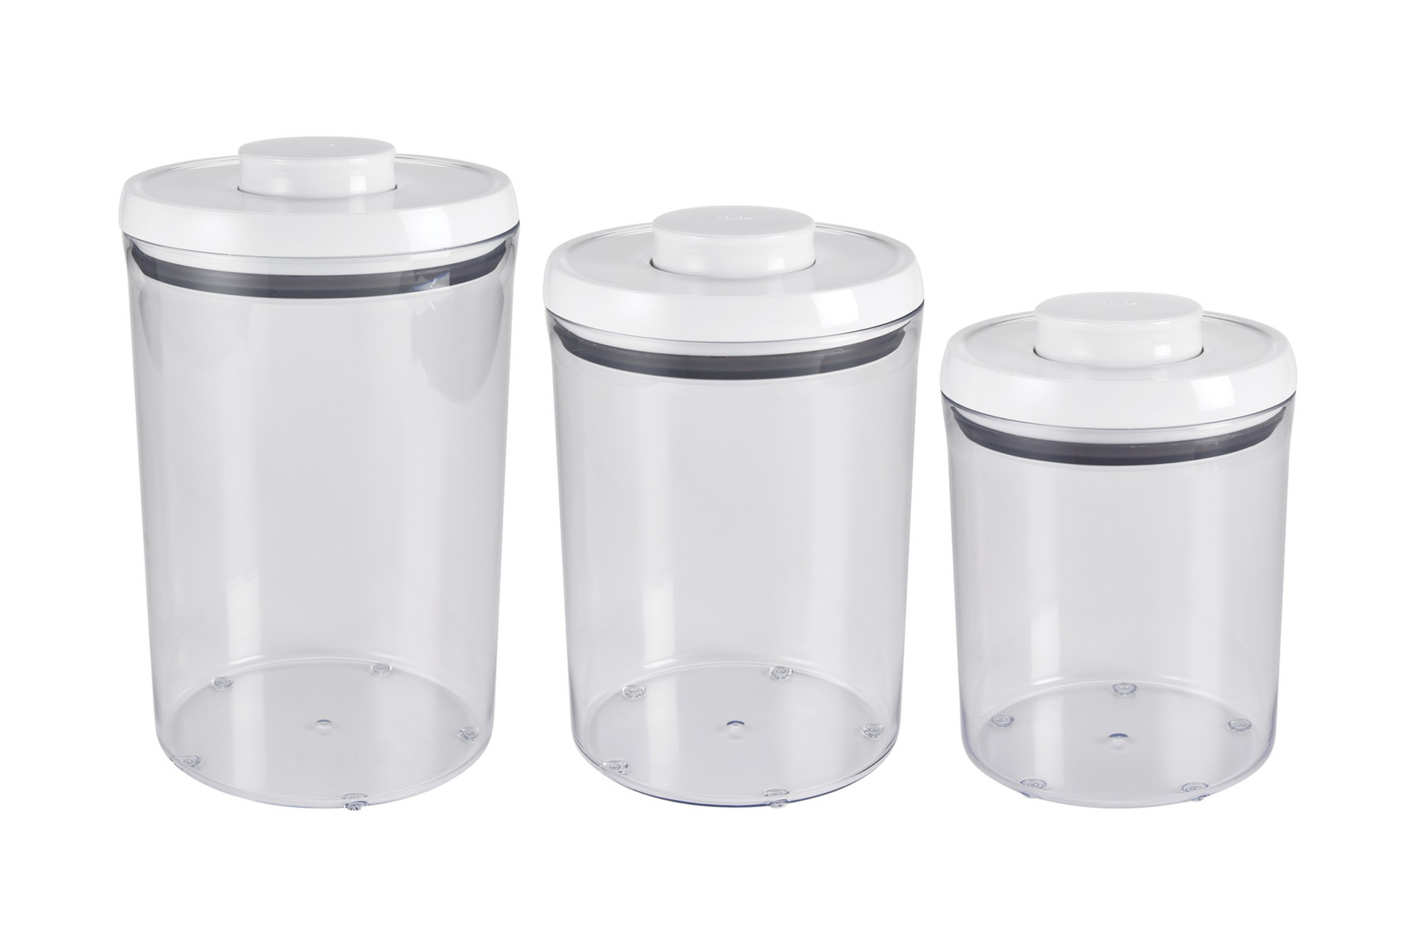 OXO Good Grips 3 Piece Pop Round Canister Set - White